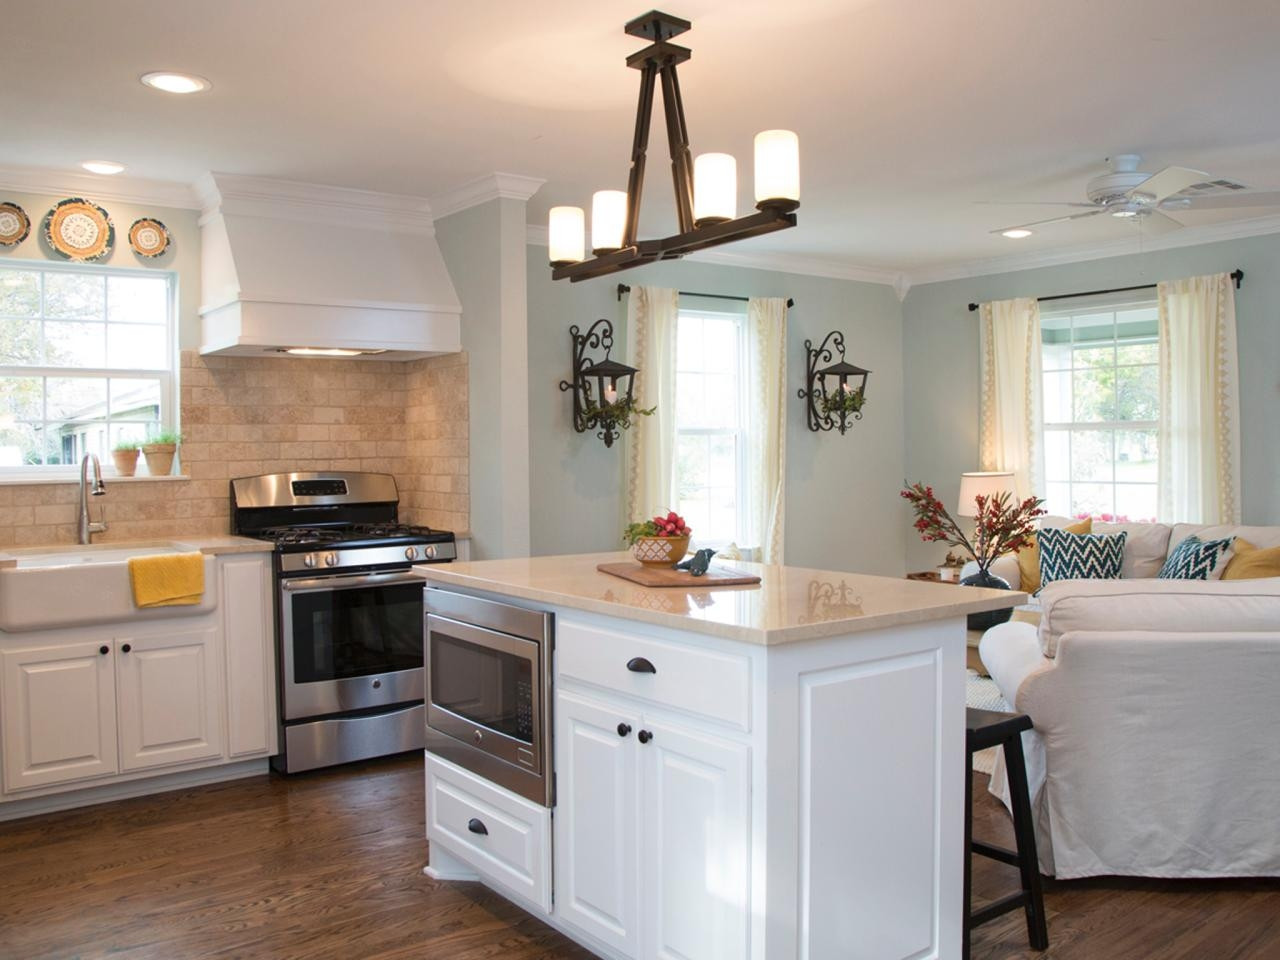 Best ideas about Joanna Gaines Kitchen Ideas . Save or Pin Hgtv family rooms design kitchen and joanna gaines chip Now.